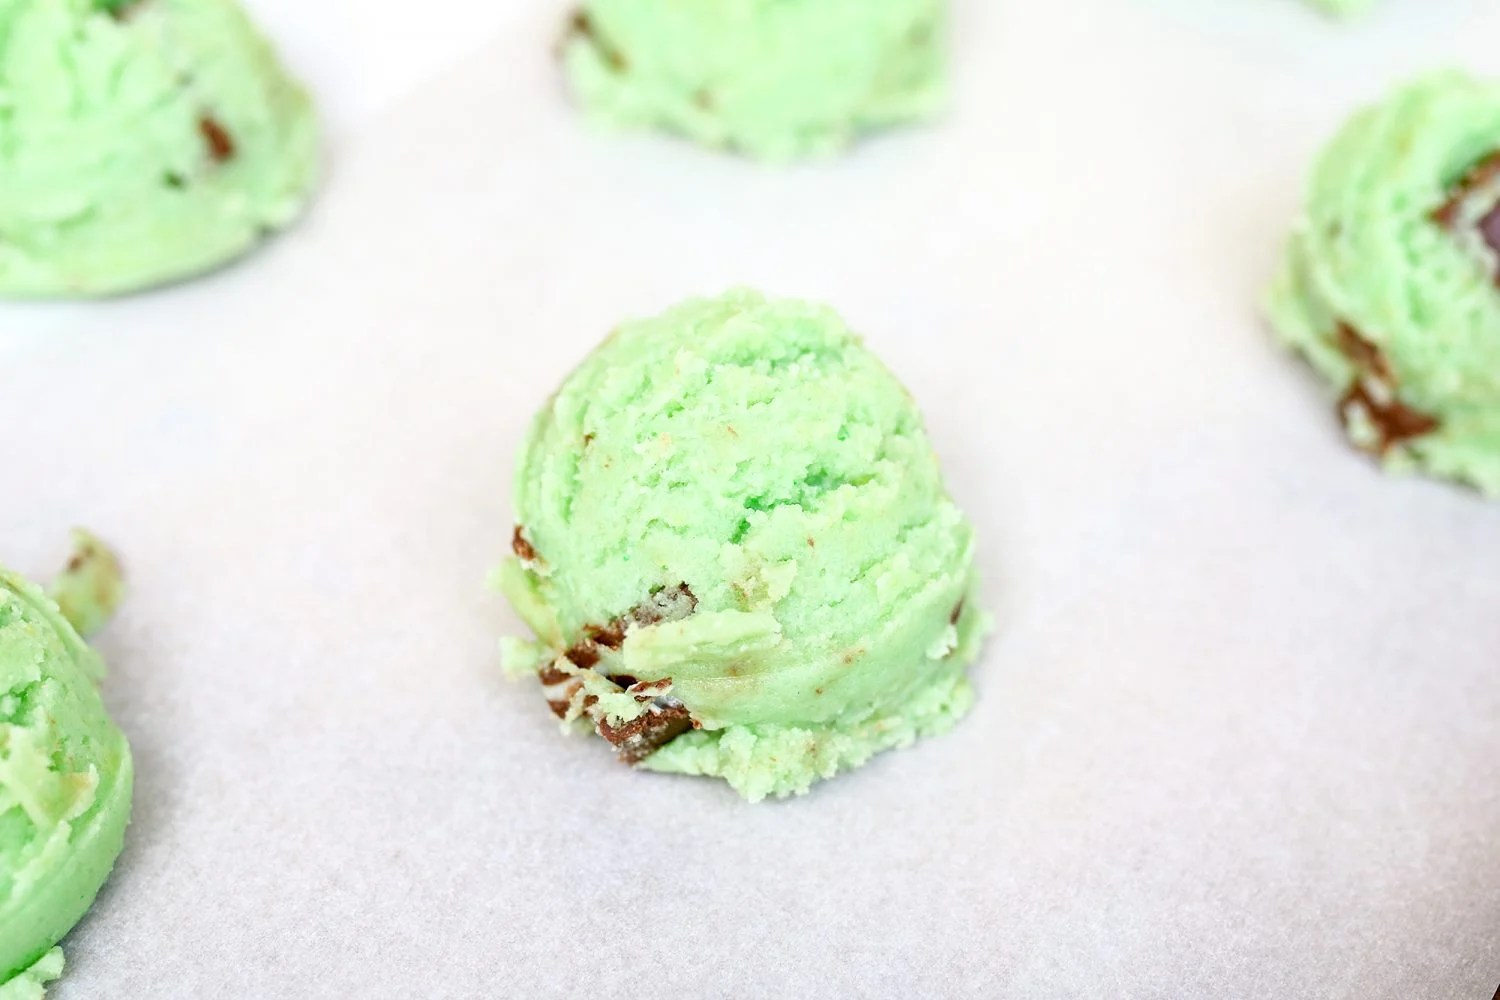 The scoops of green mint chocolate chip cookie dough look like ice cream ready for baking!